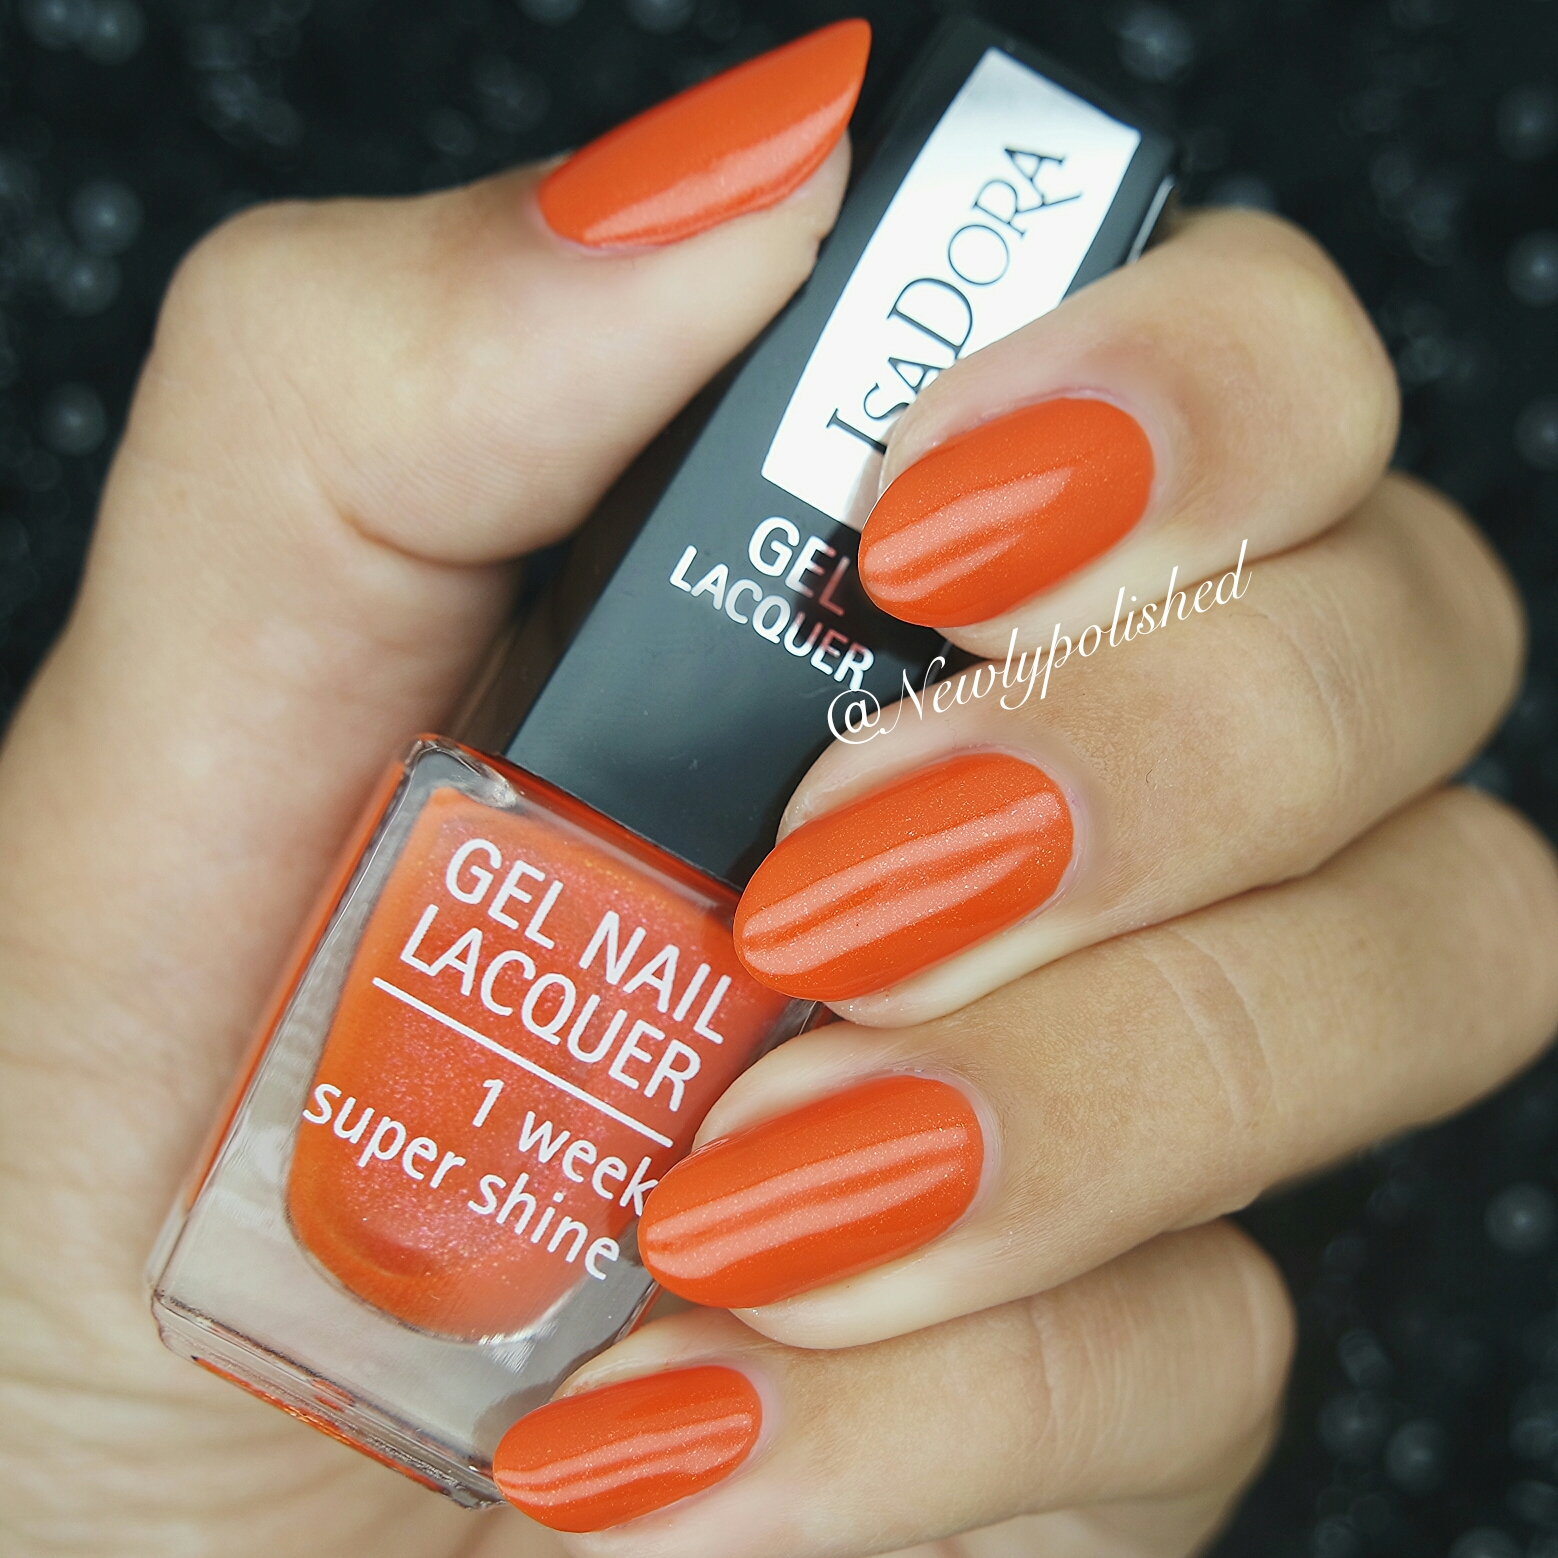 IsaDora Gel Nail Lacquer A/W 2015 - Part 1 - Newly Polished